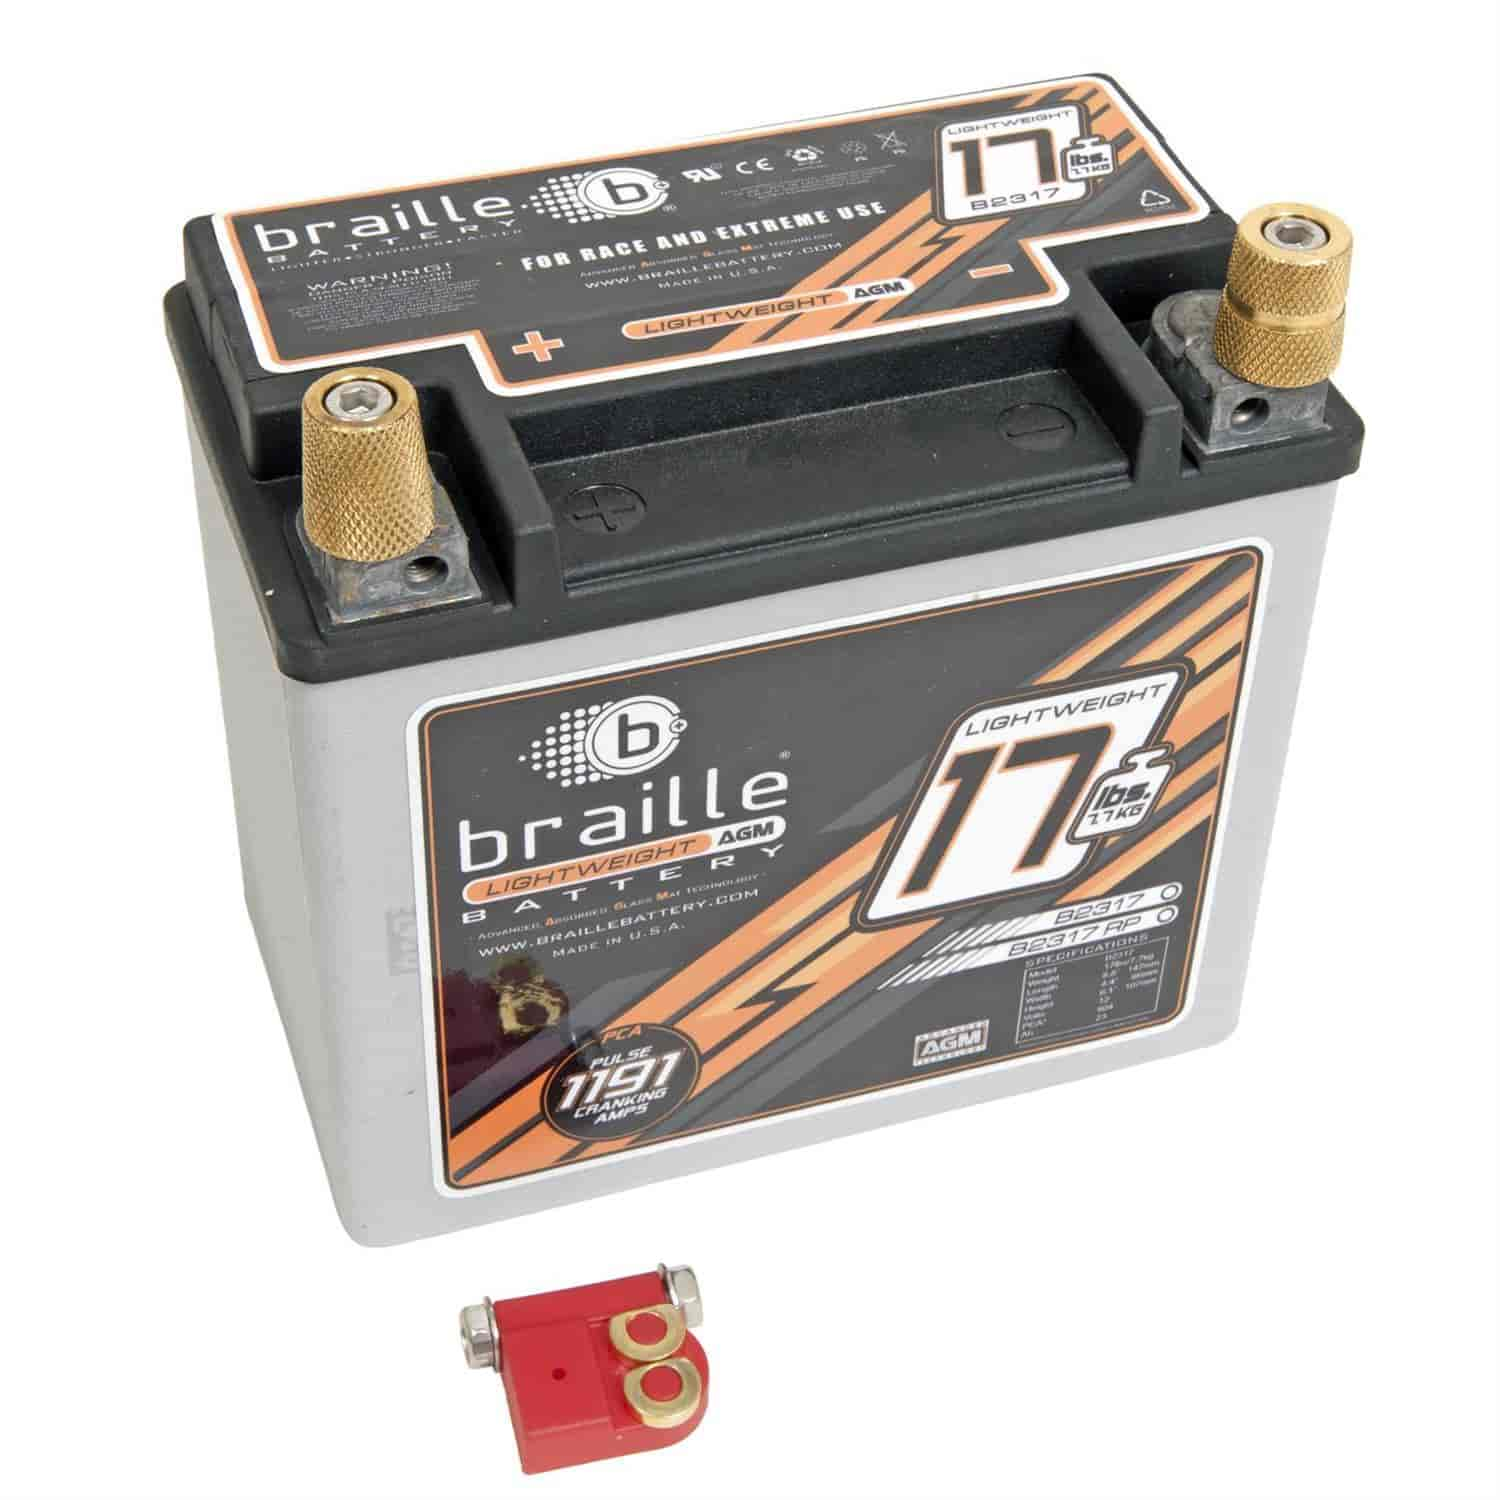 Braille Battery B2317